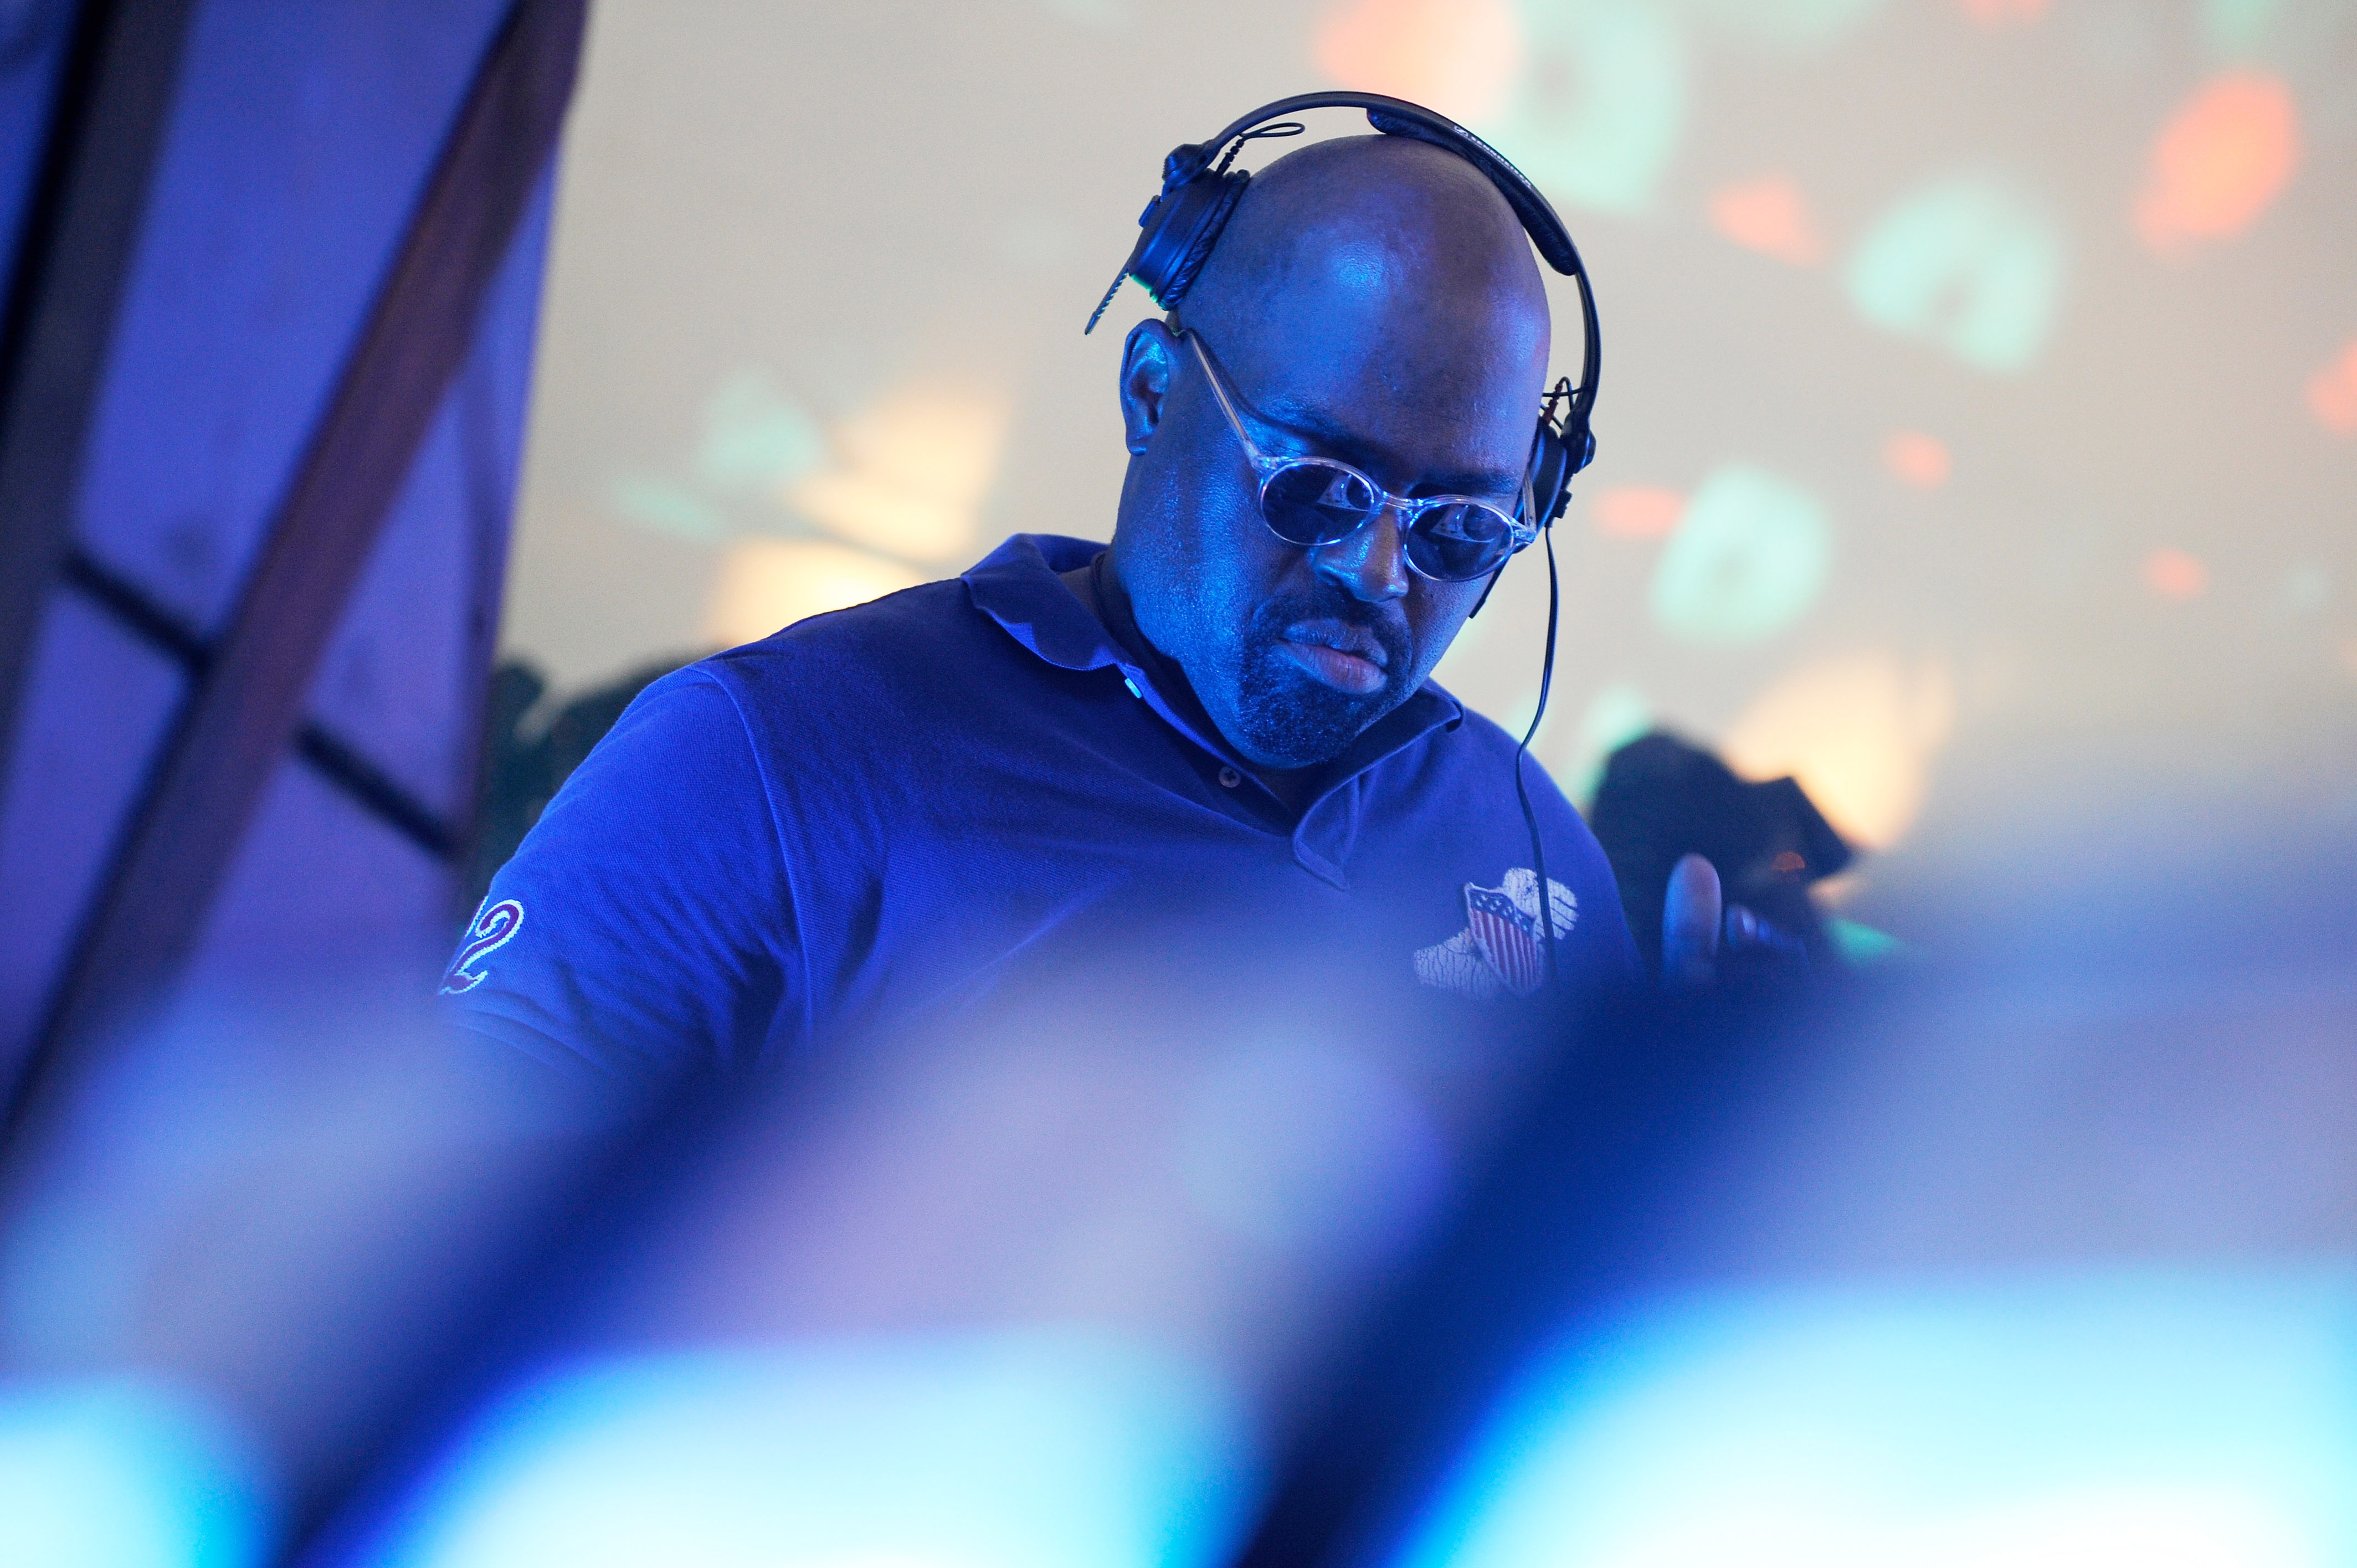 Frankie Knuckles on Randall's Island on September 6, 2009 in New York City. The house DJ passed away on March 31, 2014.